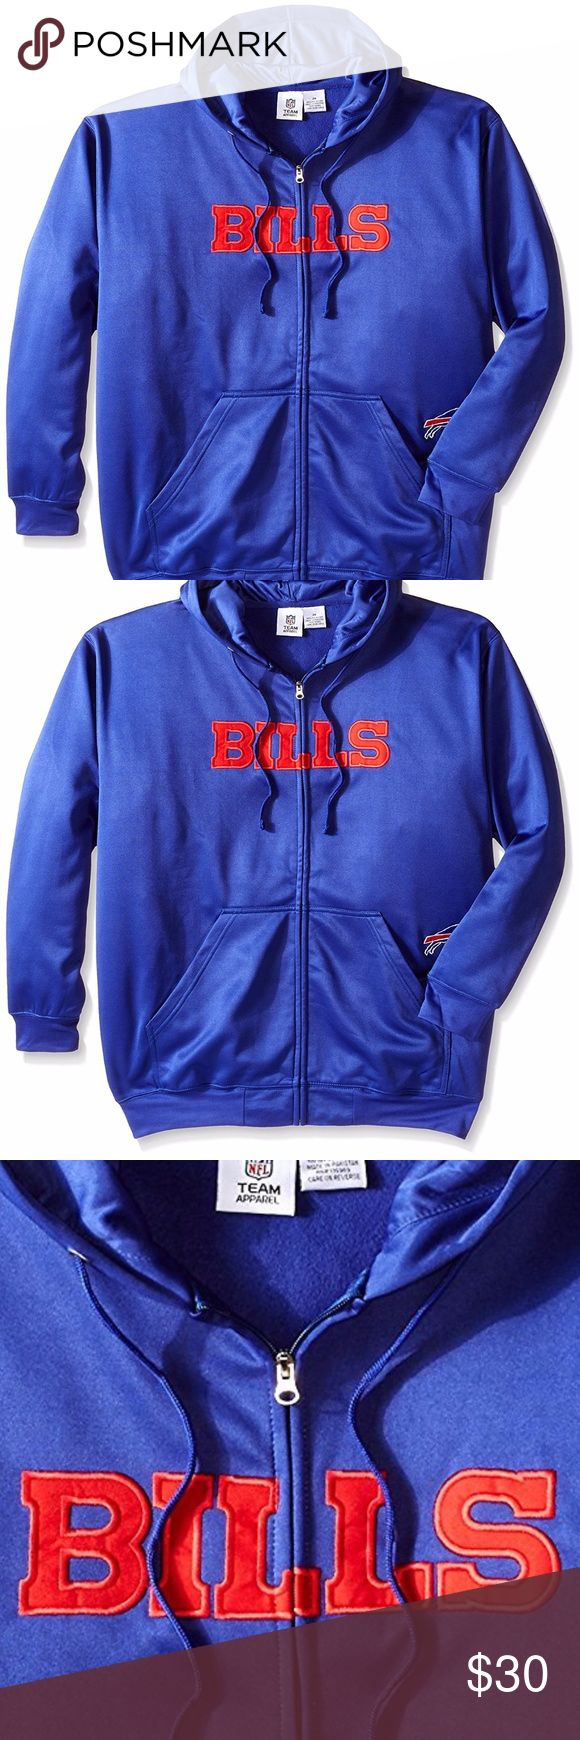 Buffalo Bills Big & Tall Full Zip Poly Hoodie Brand New Officially Licensed with tags. This Slick Browns full zip hoodie is perfect for Fall/Spring or layering. Featuring brushed fleece interior, stitched team name across the chest and embroidered logo above the left pocket. 100% polyester. (XLT) 889758182981(4X)889758182950 TX NFL Jackets & Coats